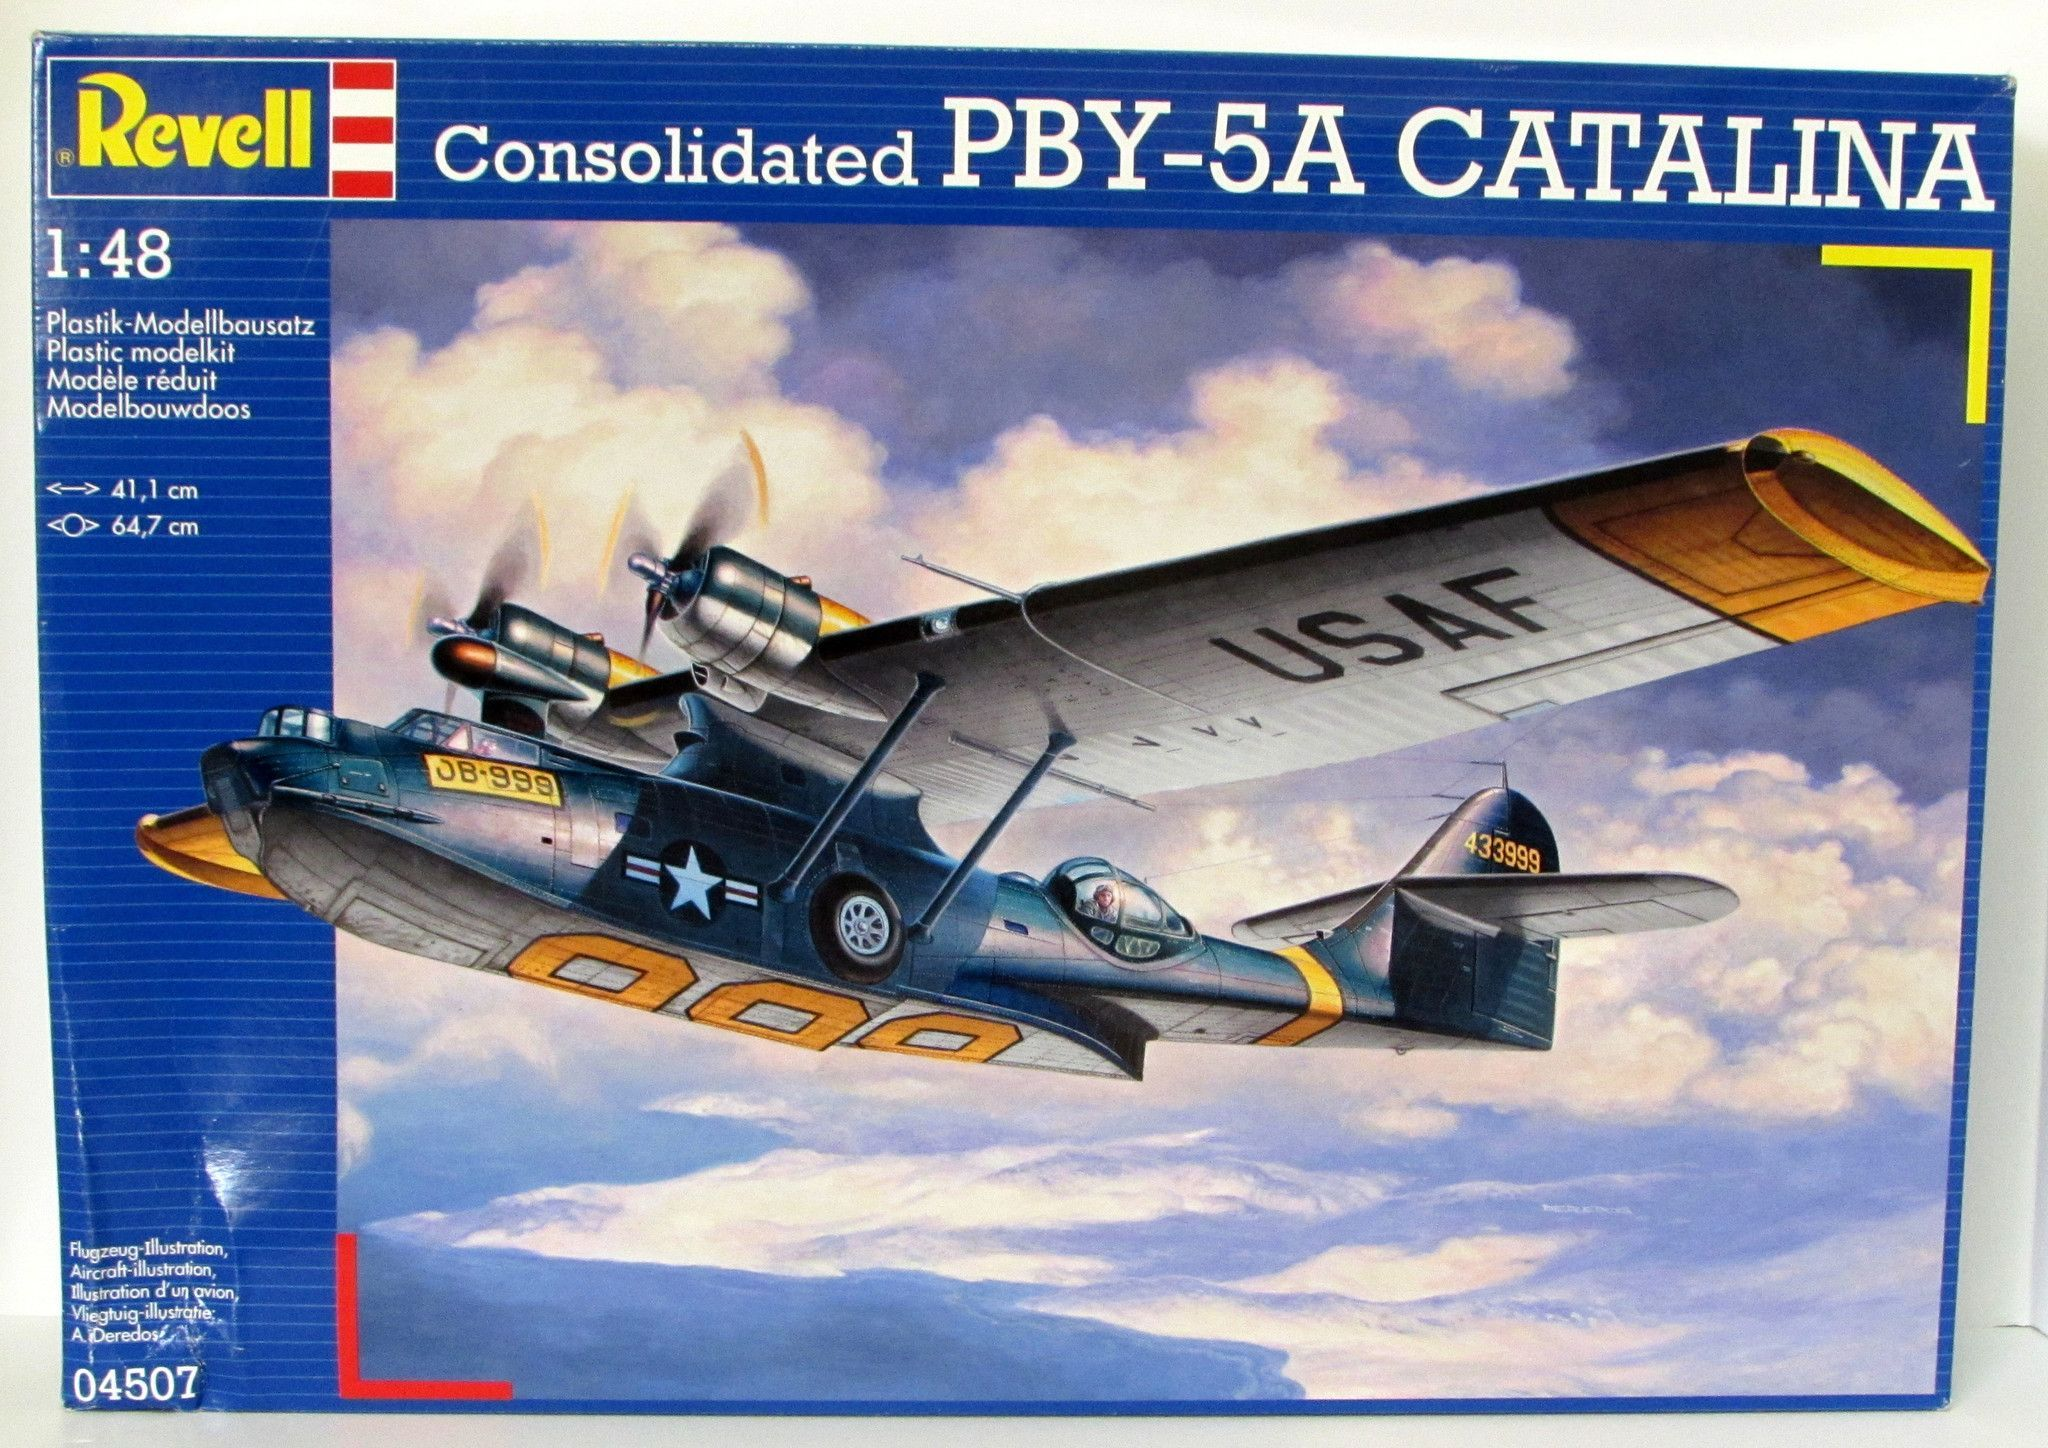 Consolidated PBY-5A Catalina Revell kit #04507 - 1/48 Scale New